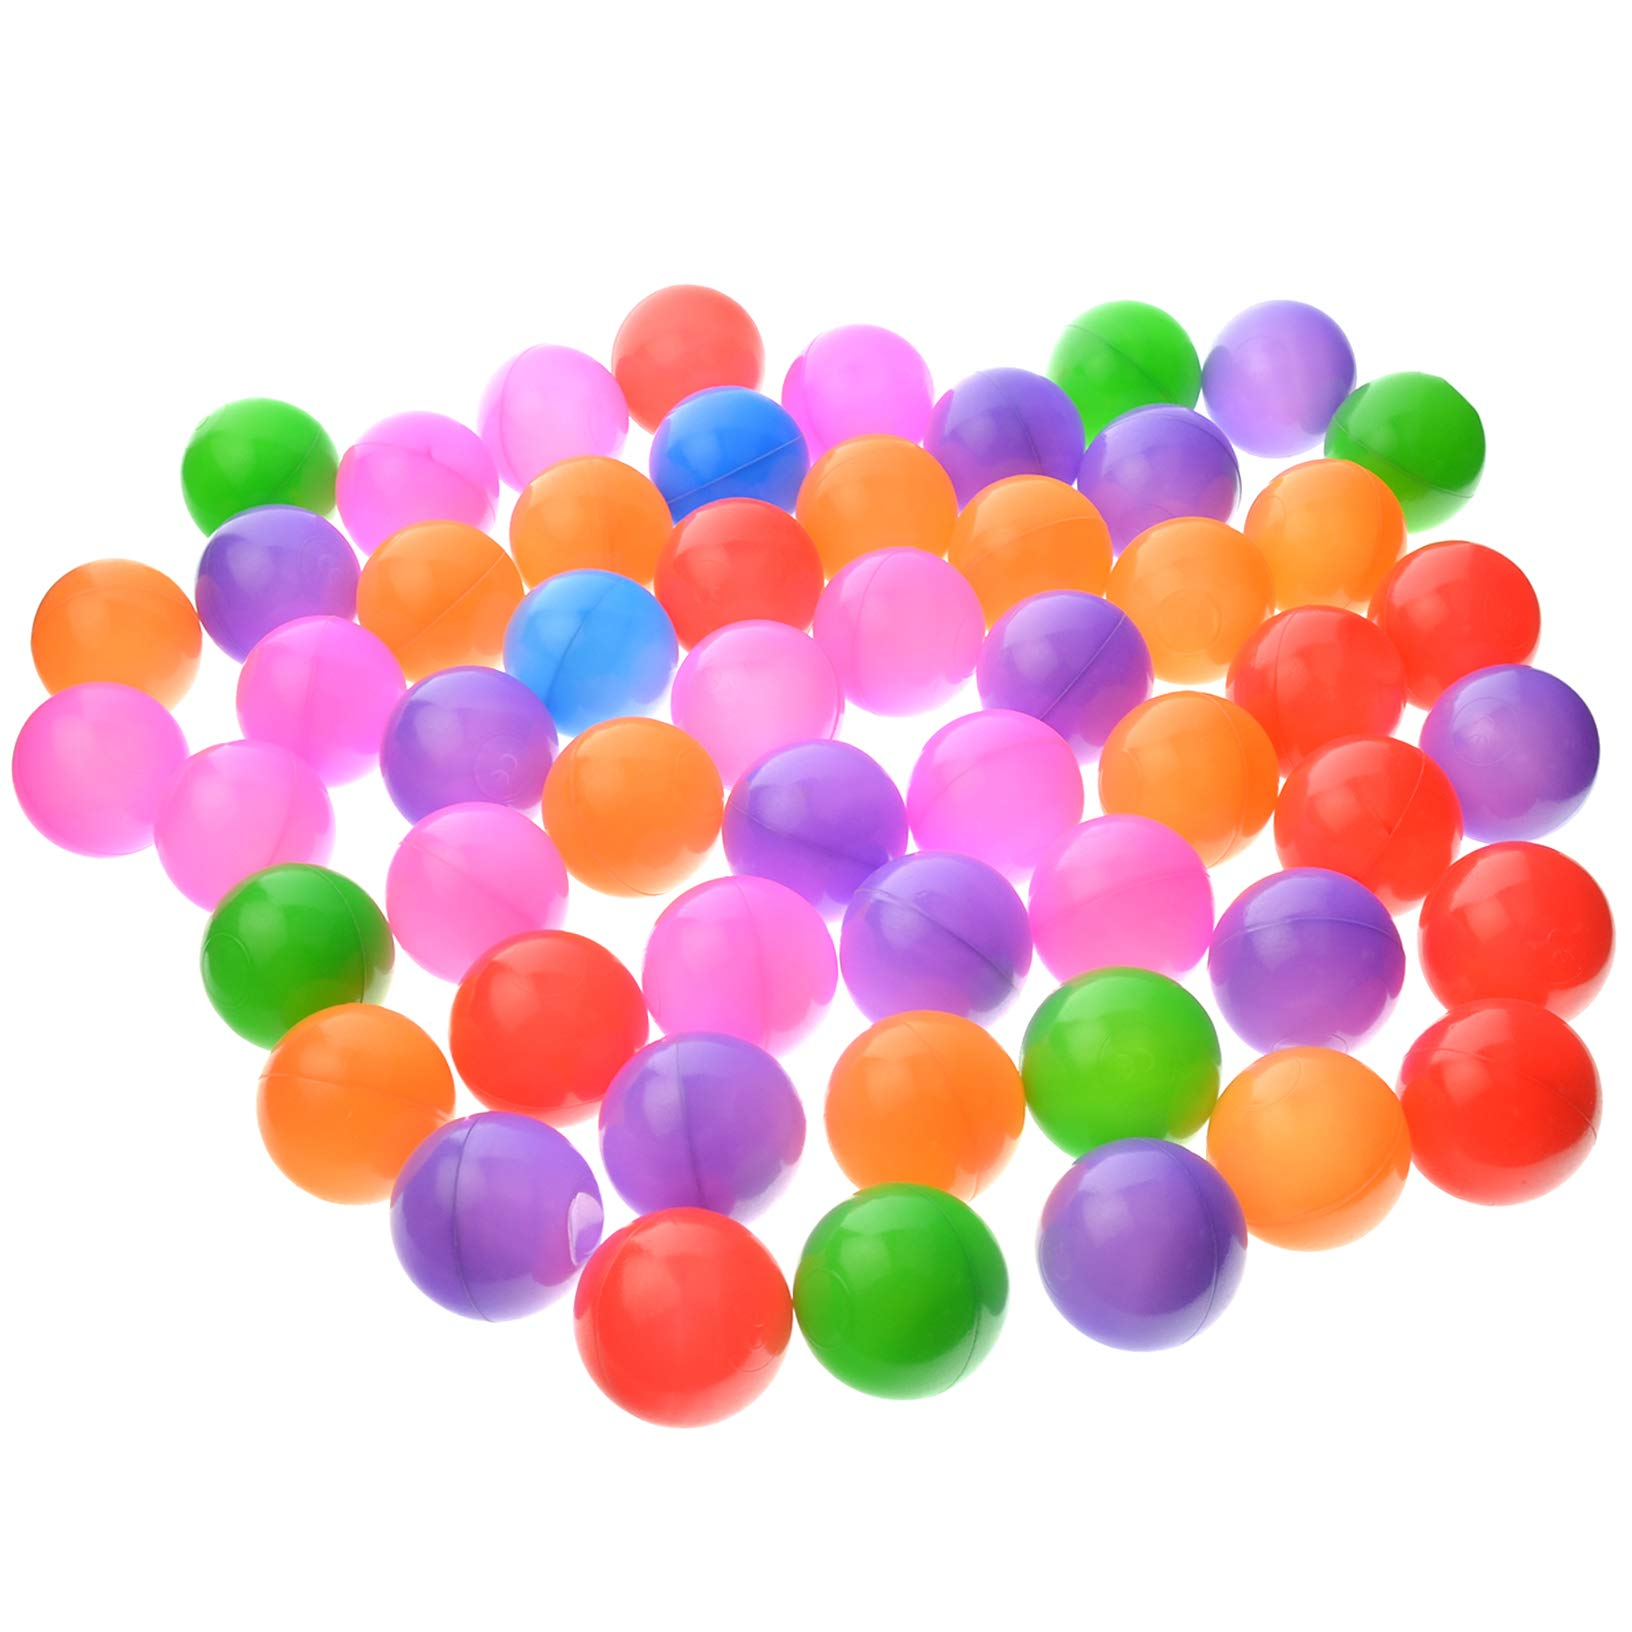 toyofmine Ocean Balls Baby Kid Swim Pit Toy Colorful Soft Plastic Bulk Pack (500 pcs) by toyofmine (Image #1)